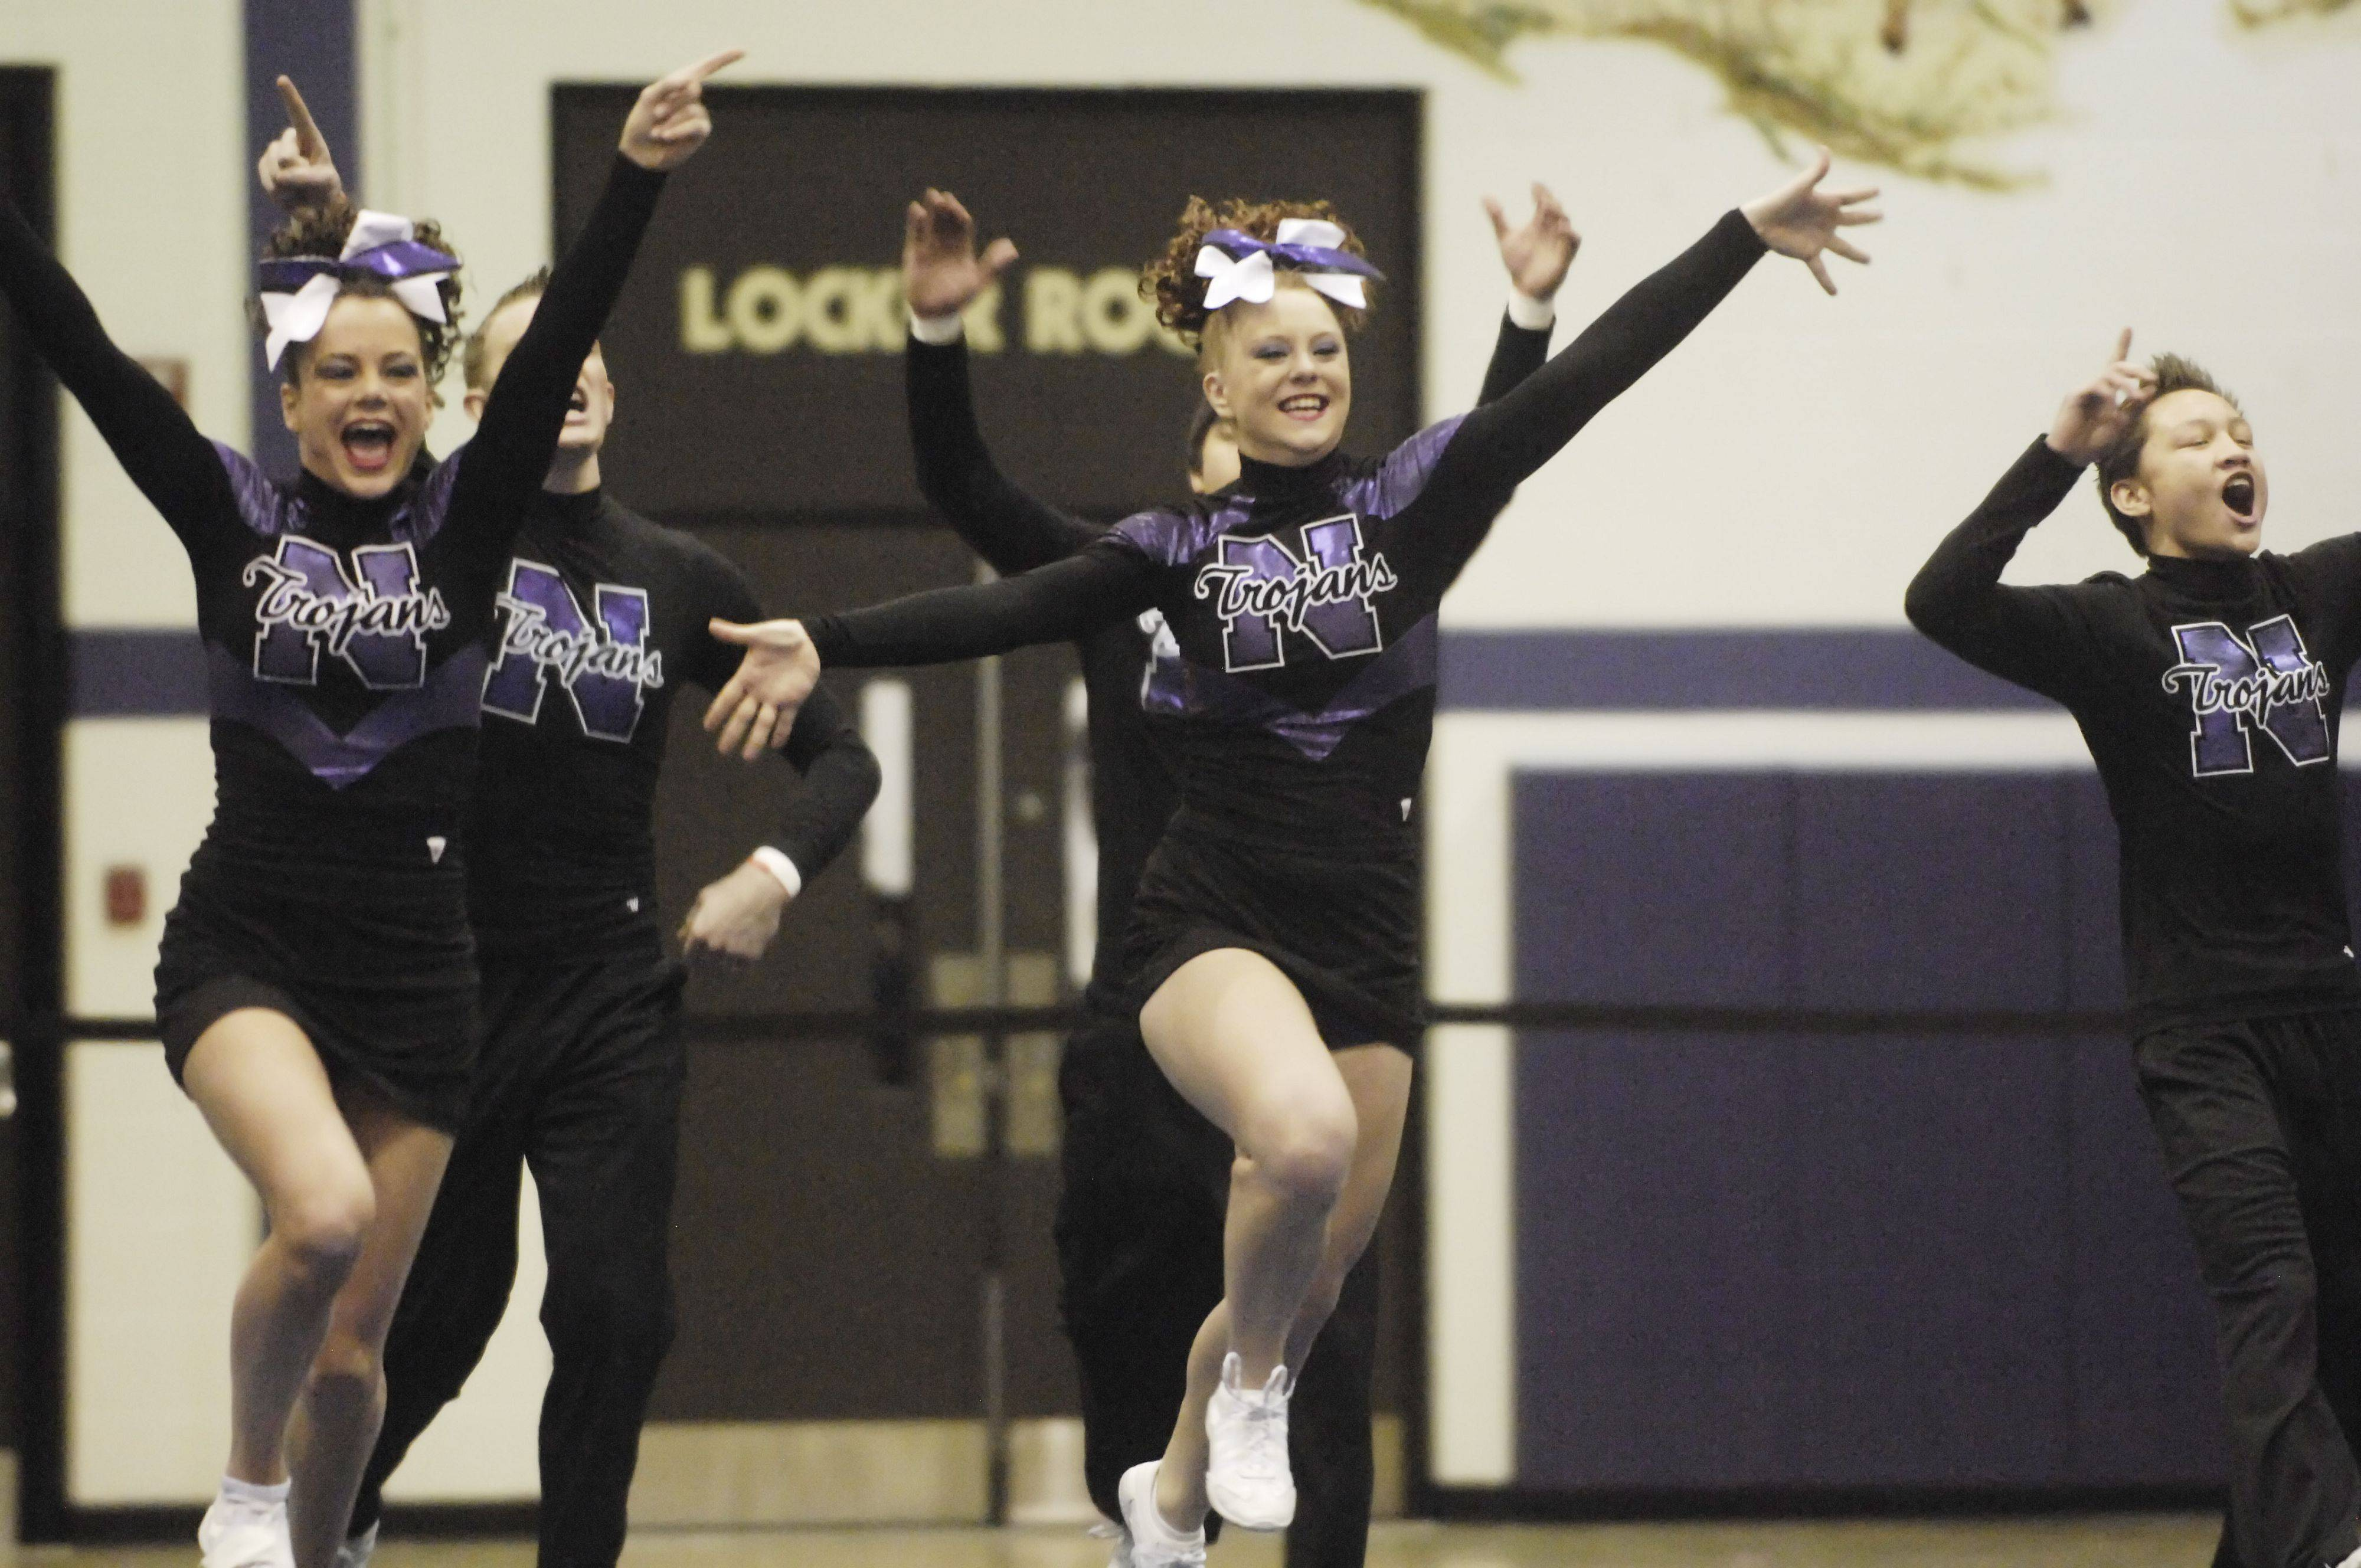 Downers Grove North competes during Saturday's cheerleading sectional hosted by Rolling Meadows High School.